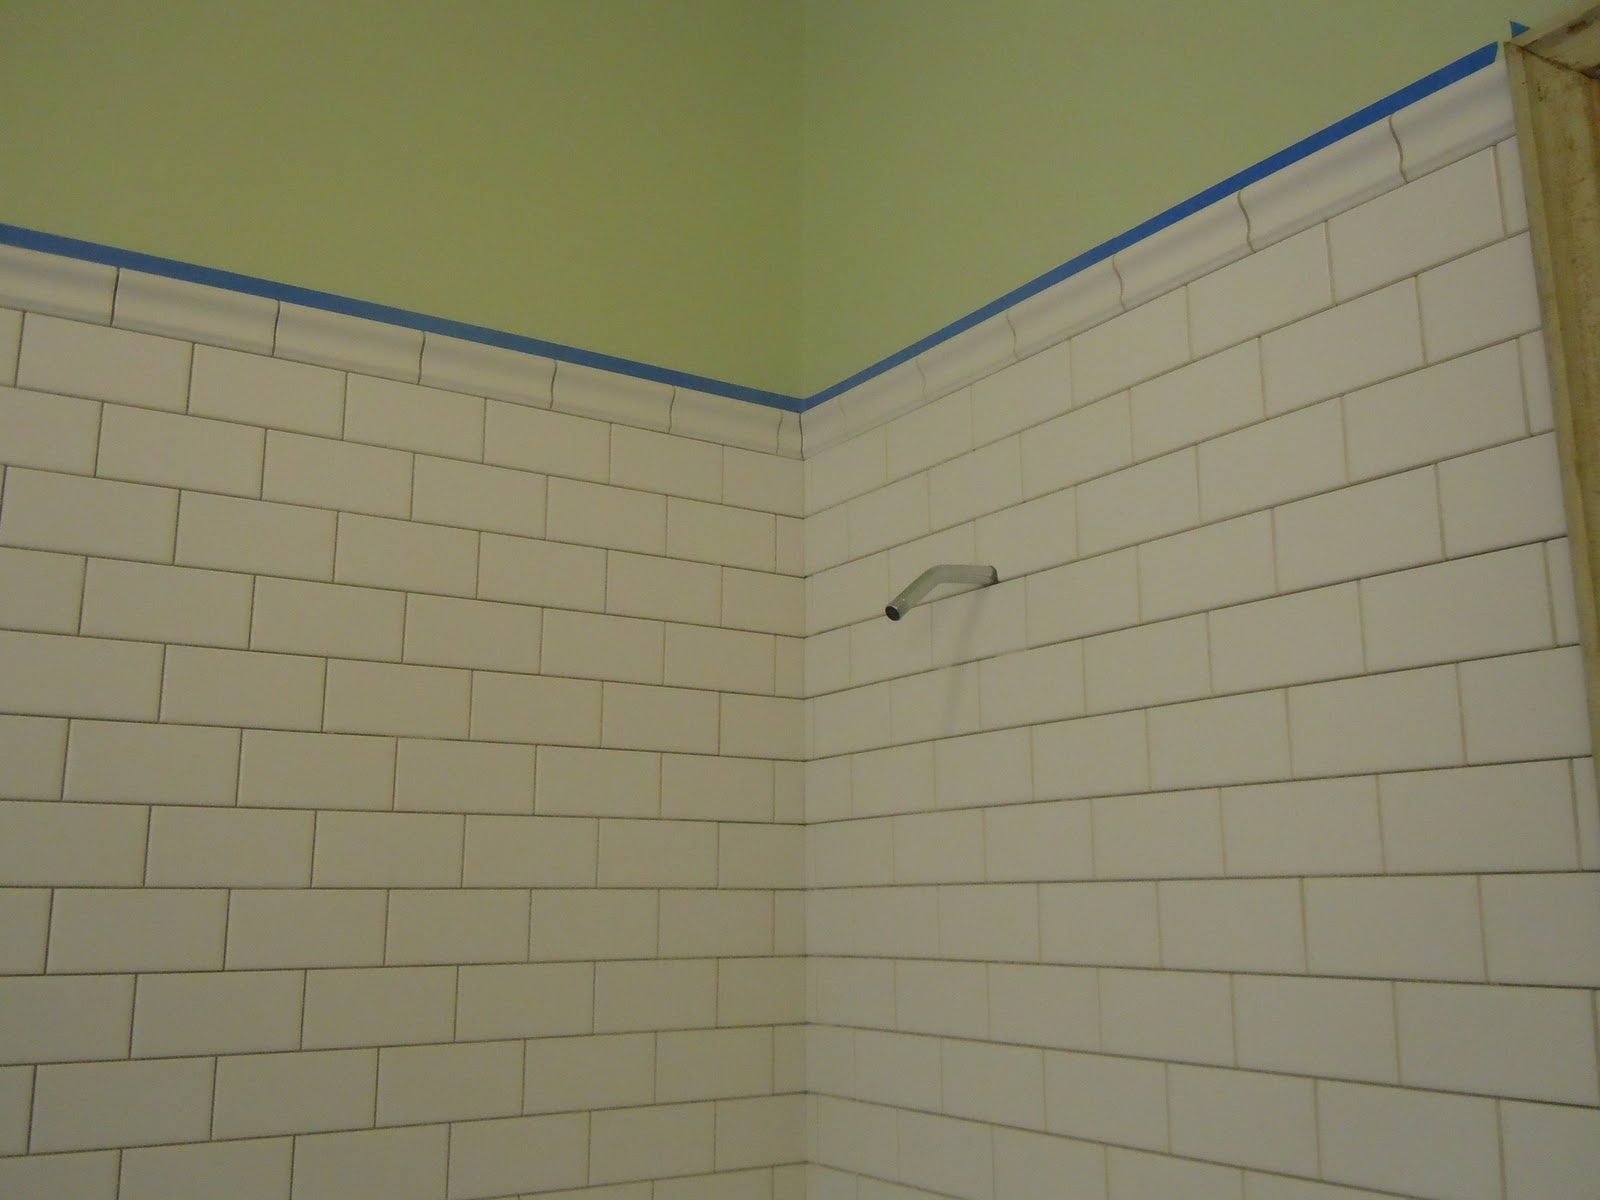 Forest hall grouting bathroom wall tiles